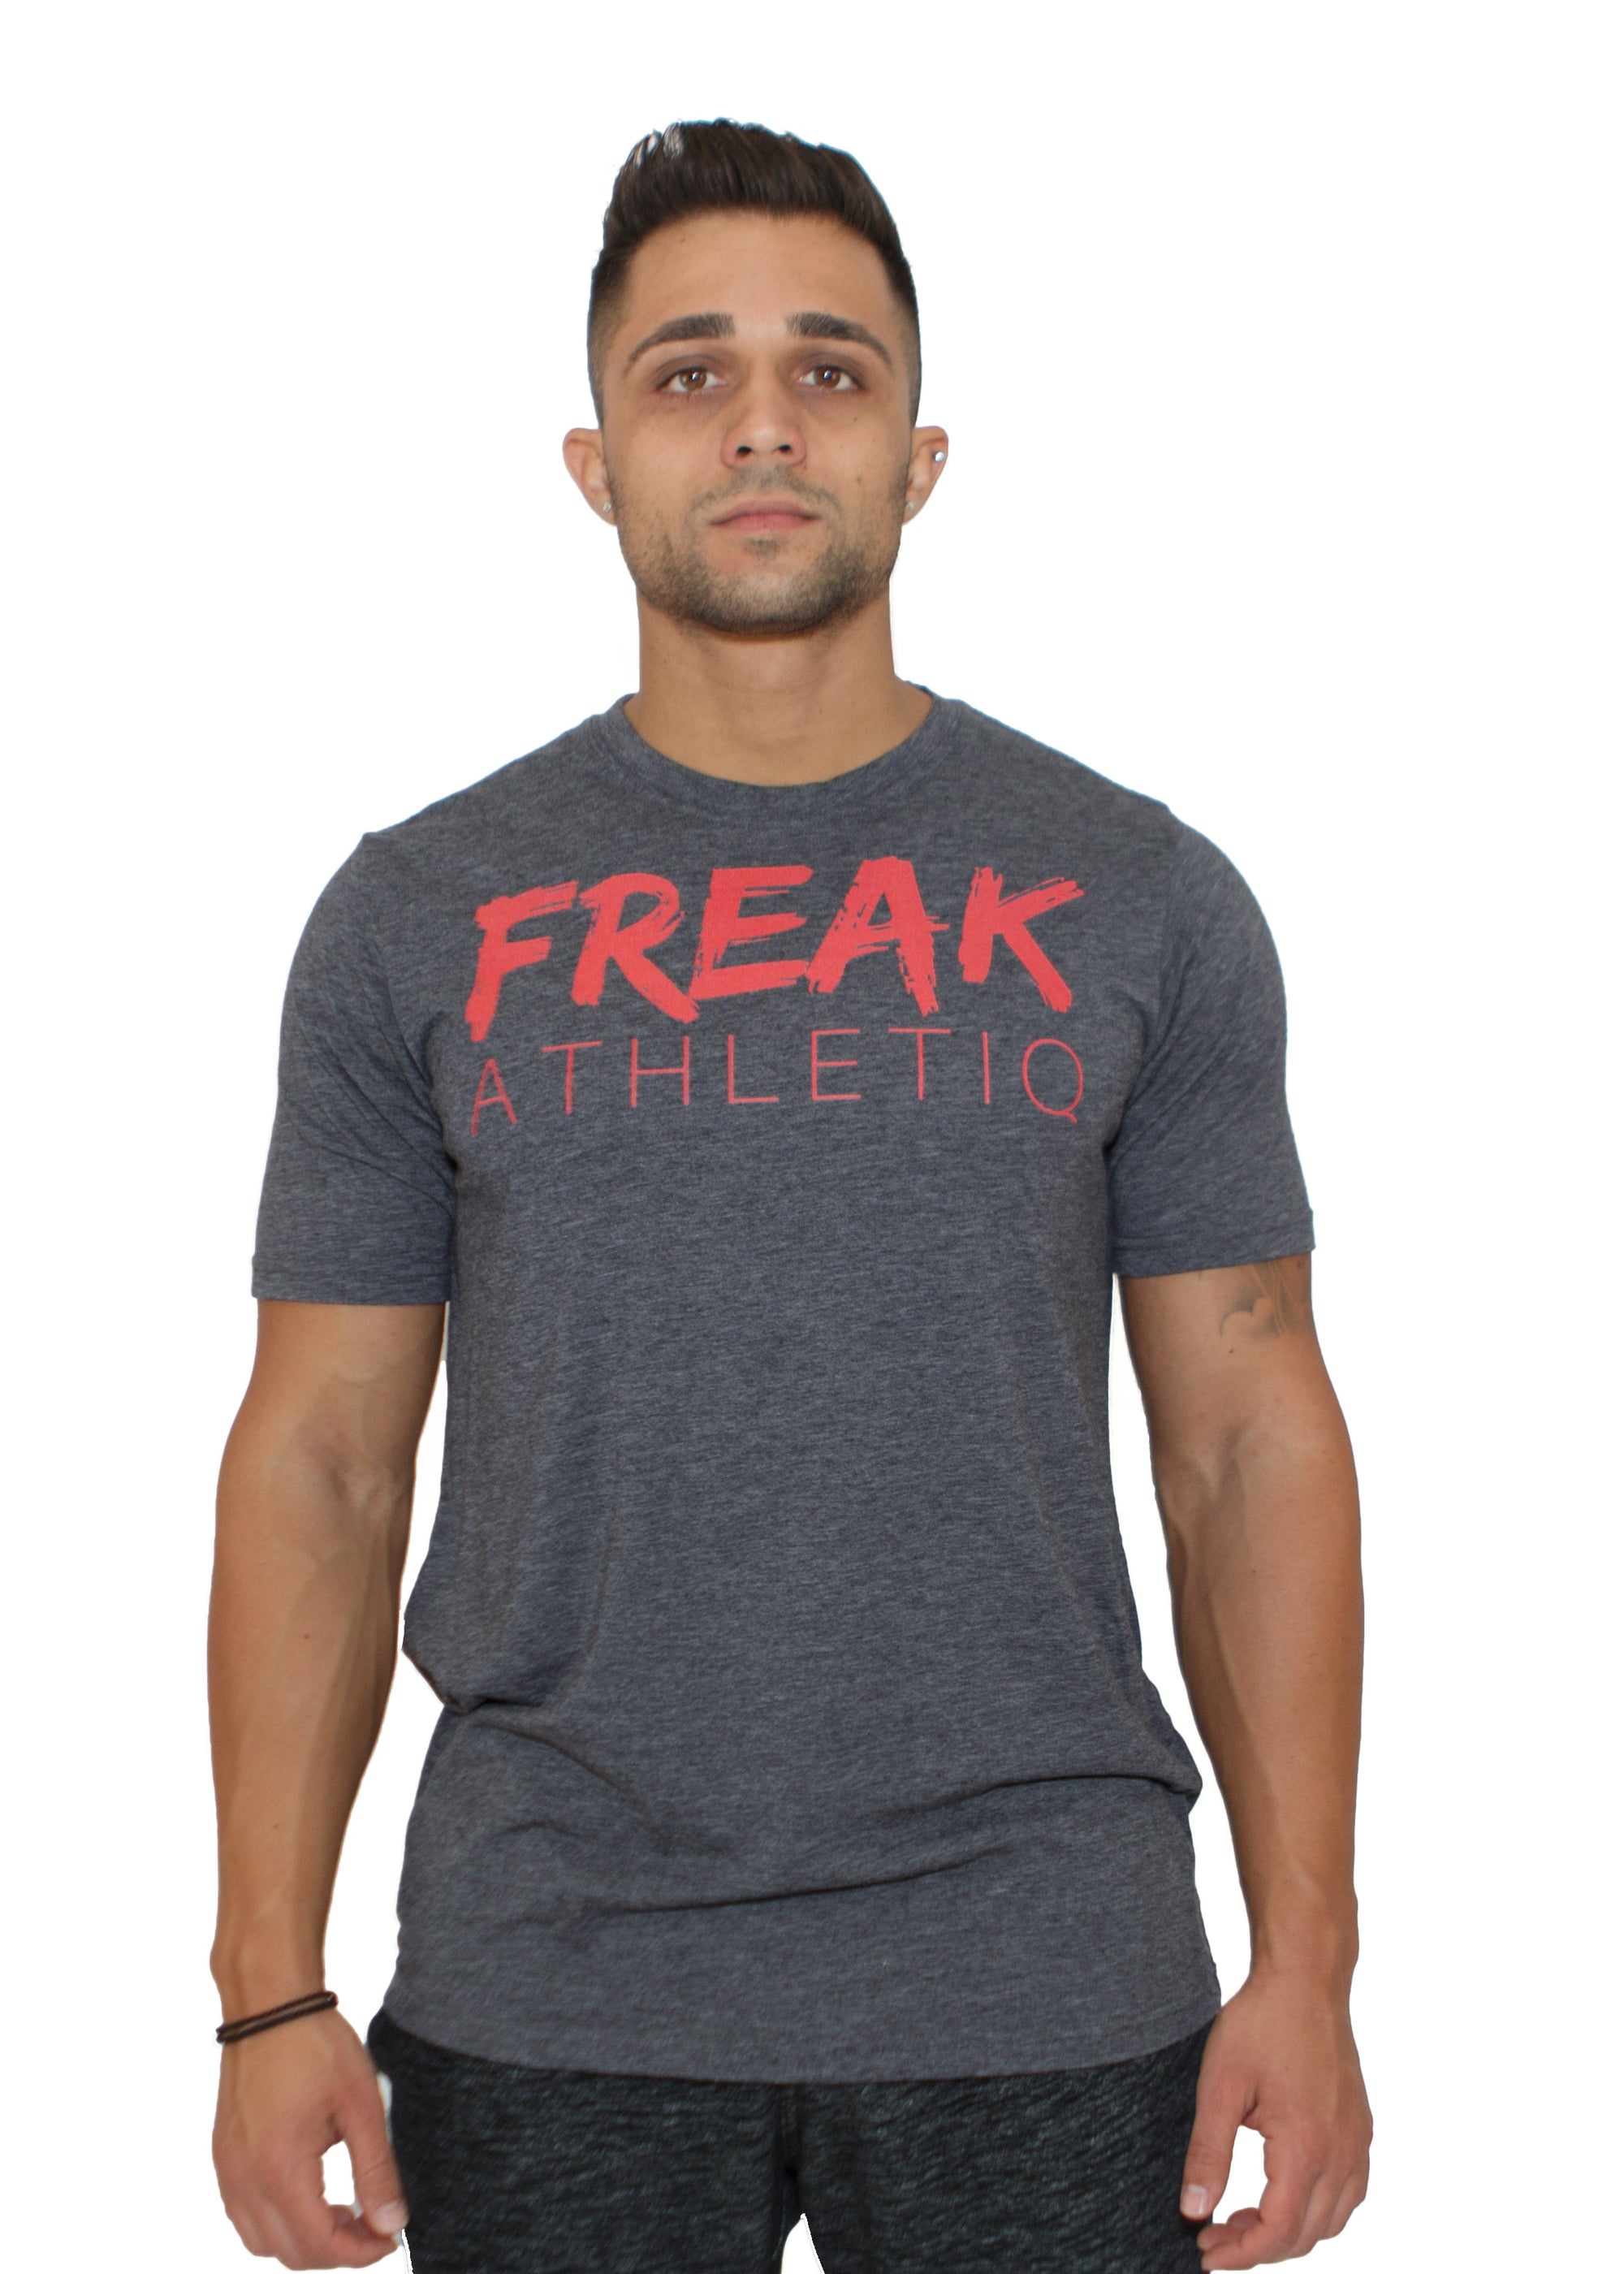 Freak Athletiq Debut Tee - Charcoal